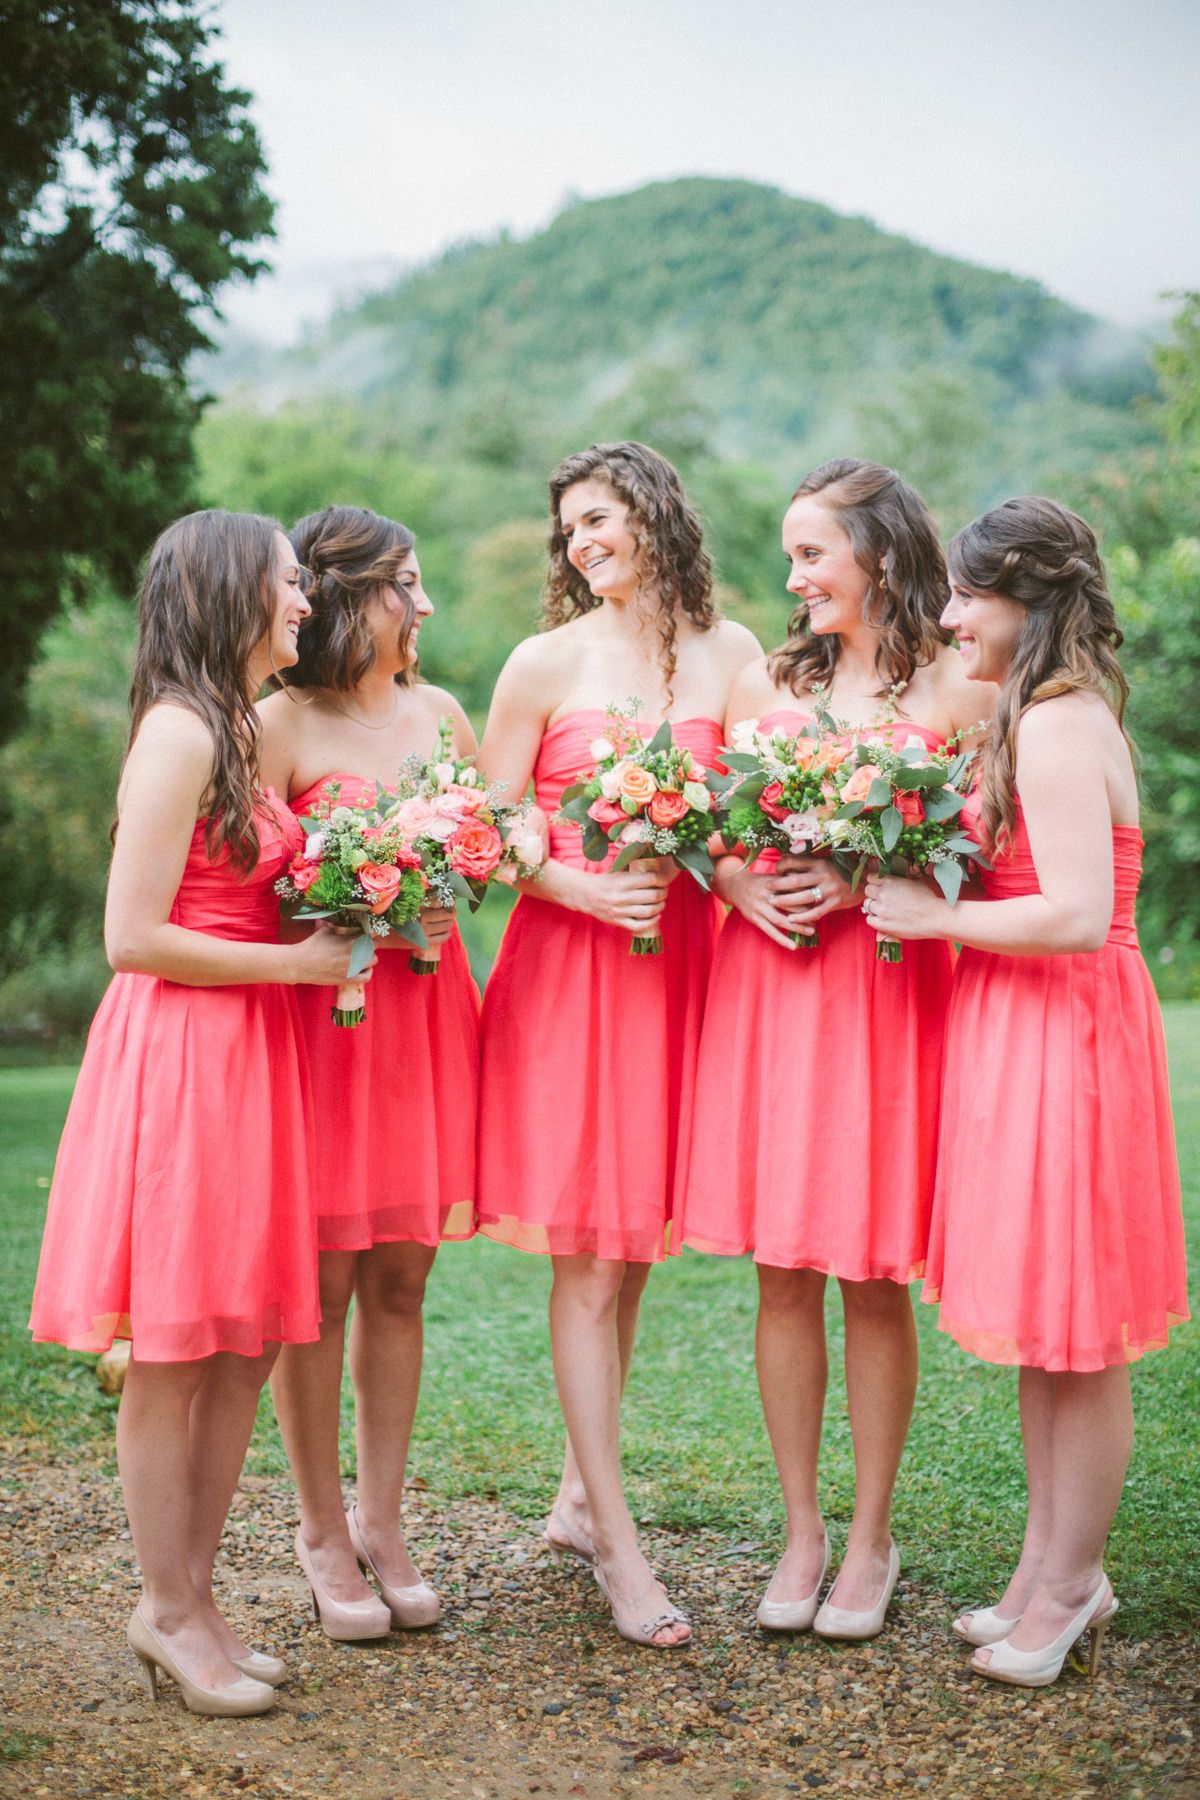 Coral wedding at mountain magnolia inn magnolia peach and ivory coral bridesmaid dresses httpstylemepretty201403 ombrellifo Gallery